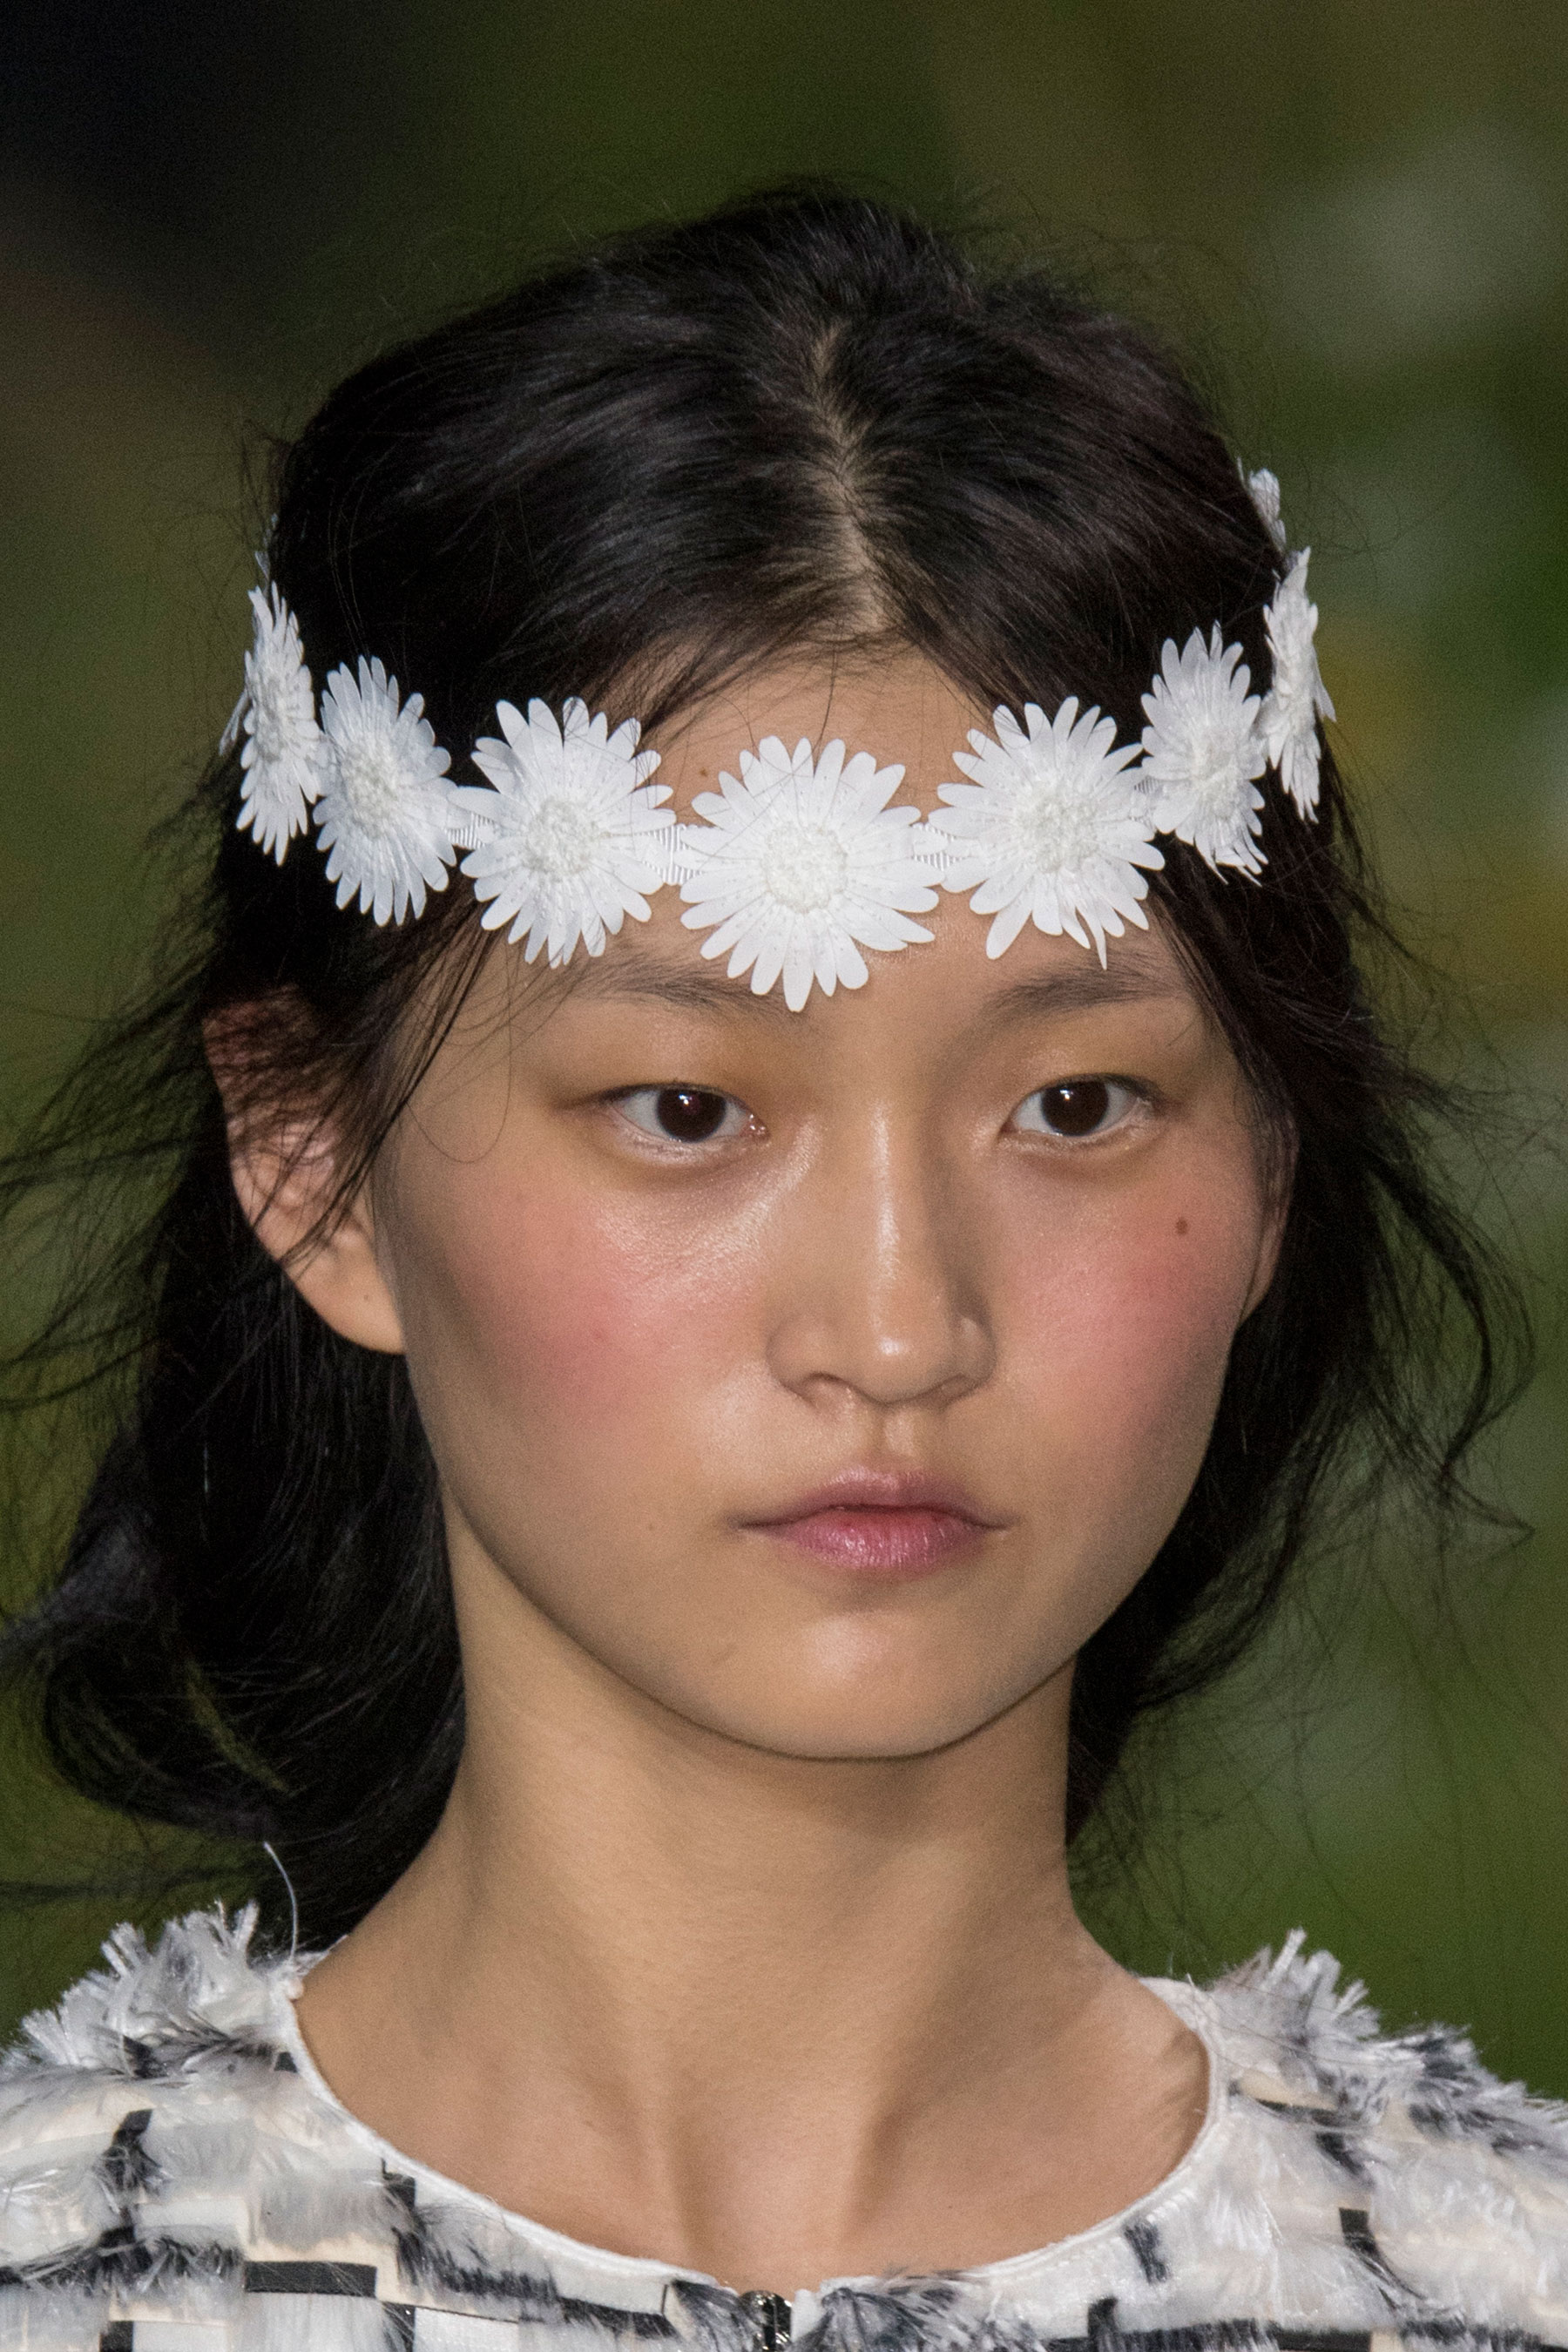 Moncler-Gamme-Rouge-spring-2016-runway-beauty-fashion-show-the-impression-30